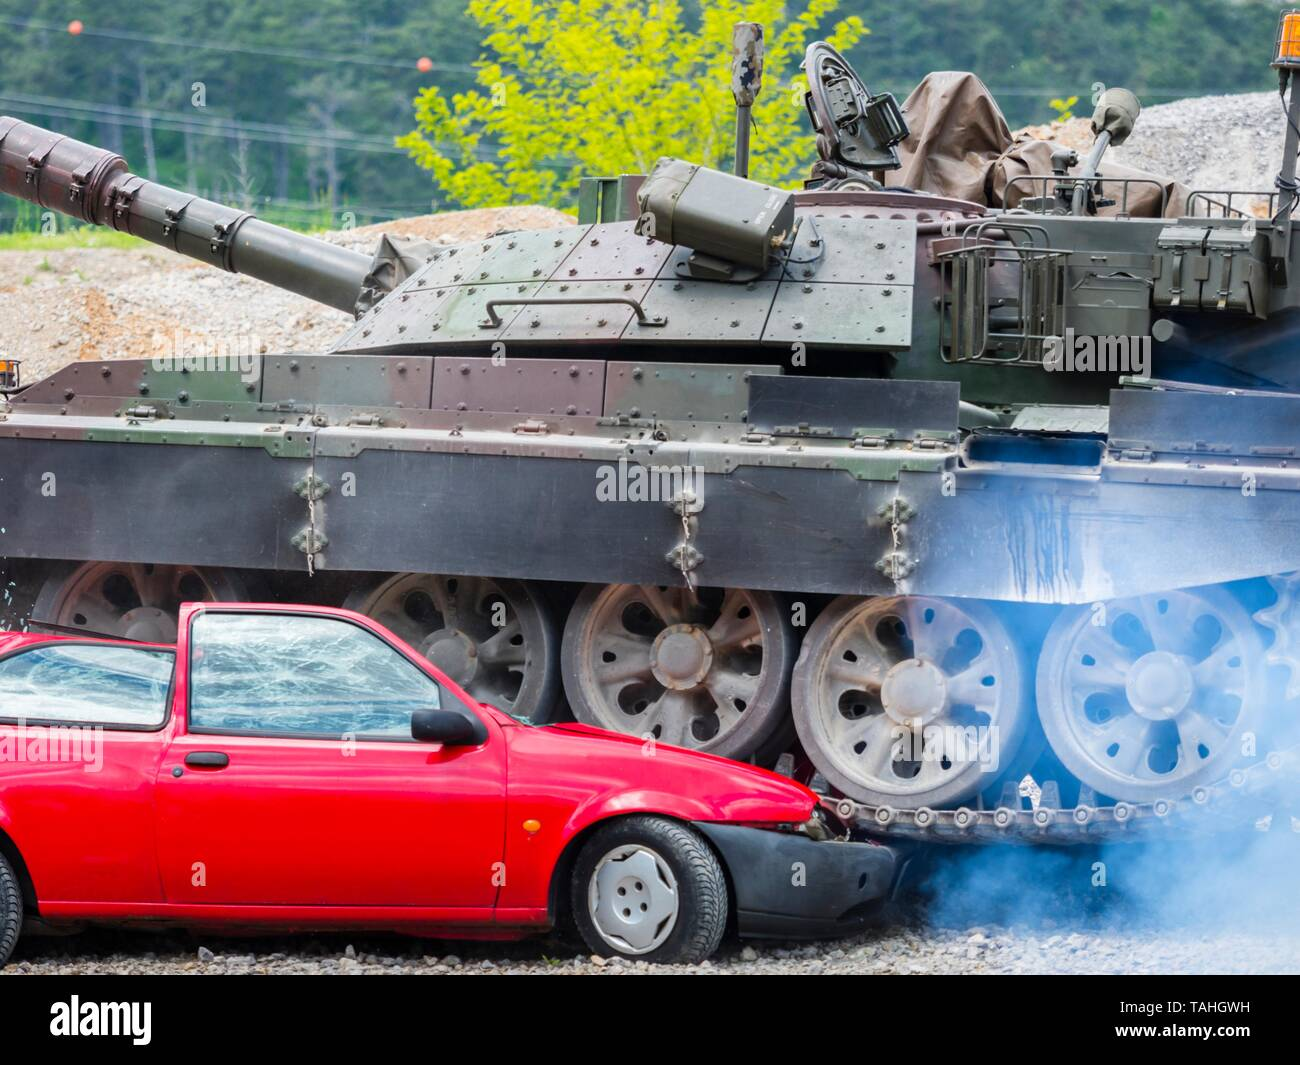 Tank crushing vehicle during public military demonstration in Pivka Slovenia Slovenian modified M-55 S tank driving side-vew close-up closeup - Stock Image